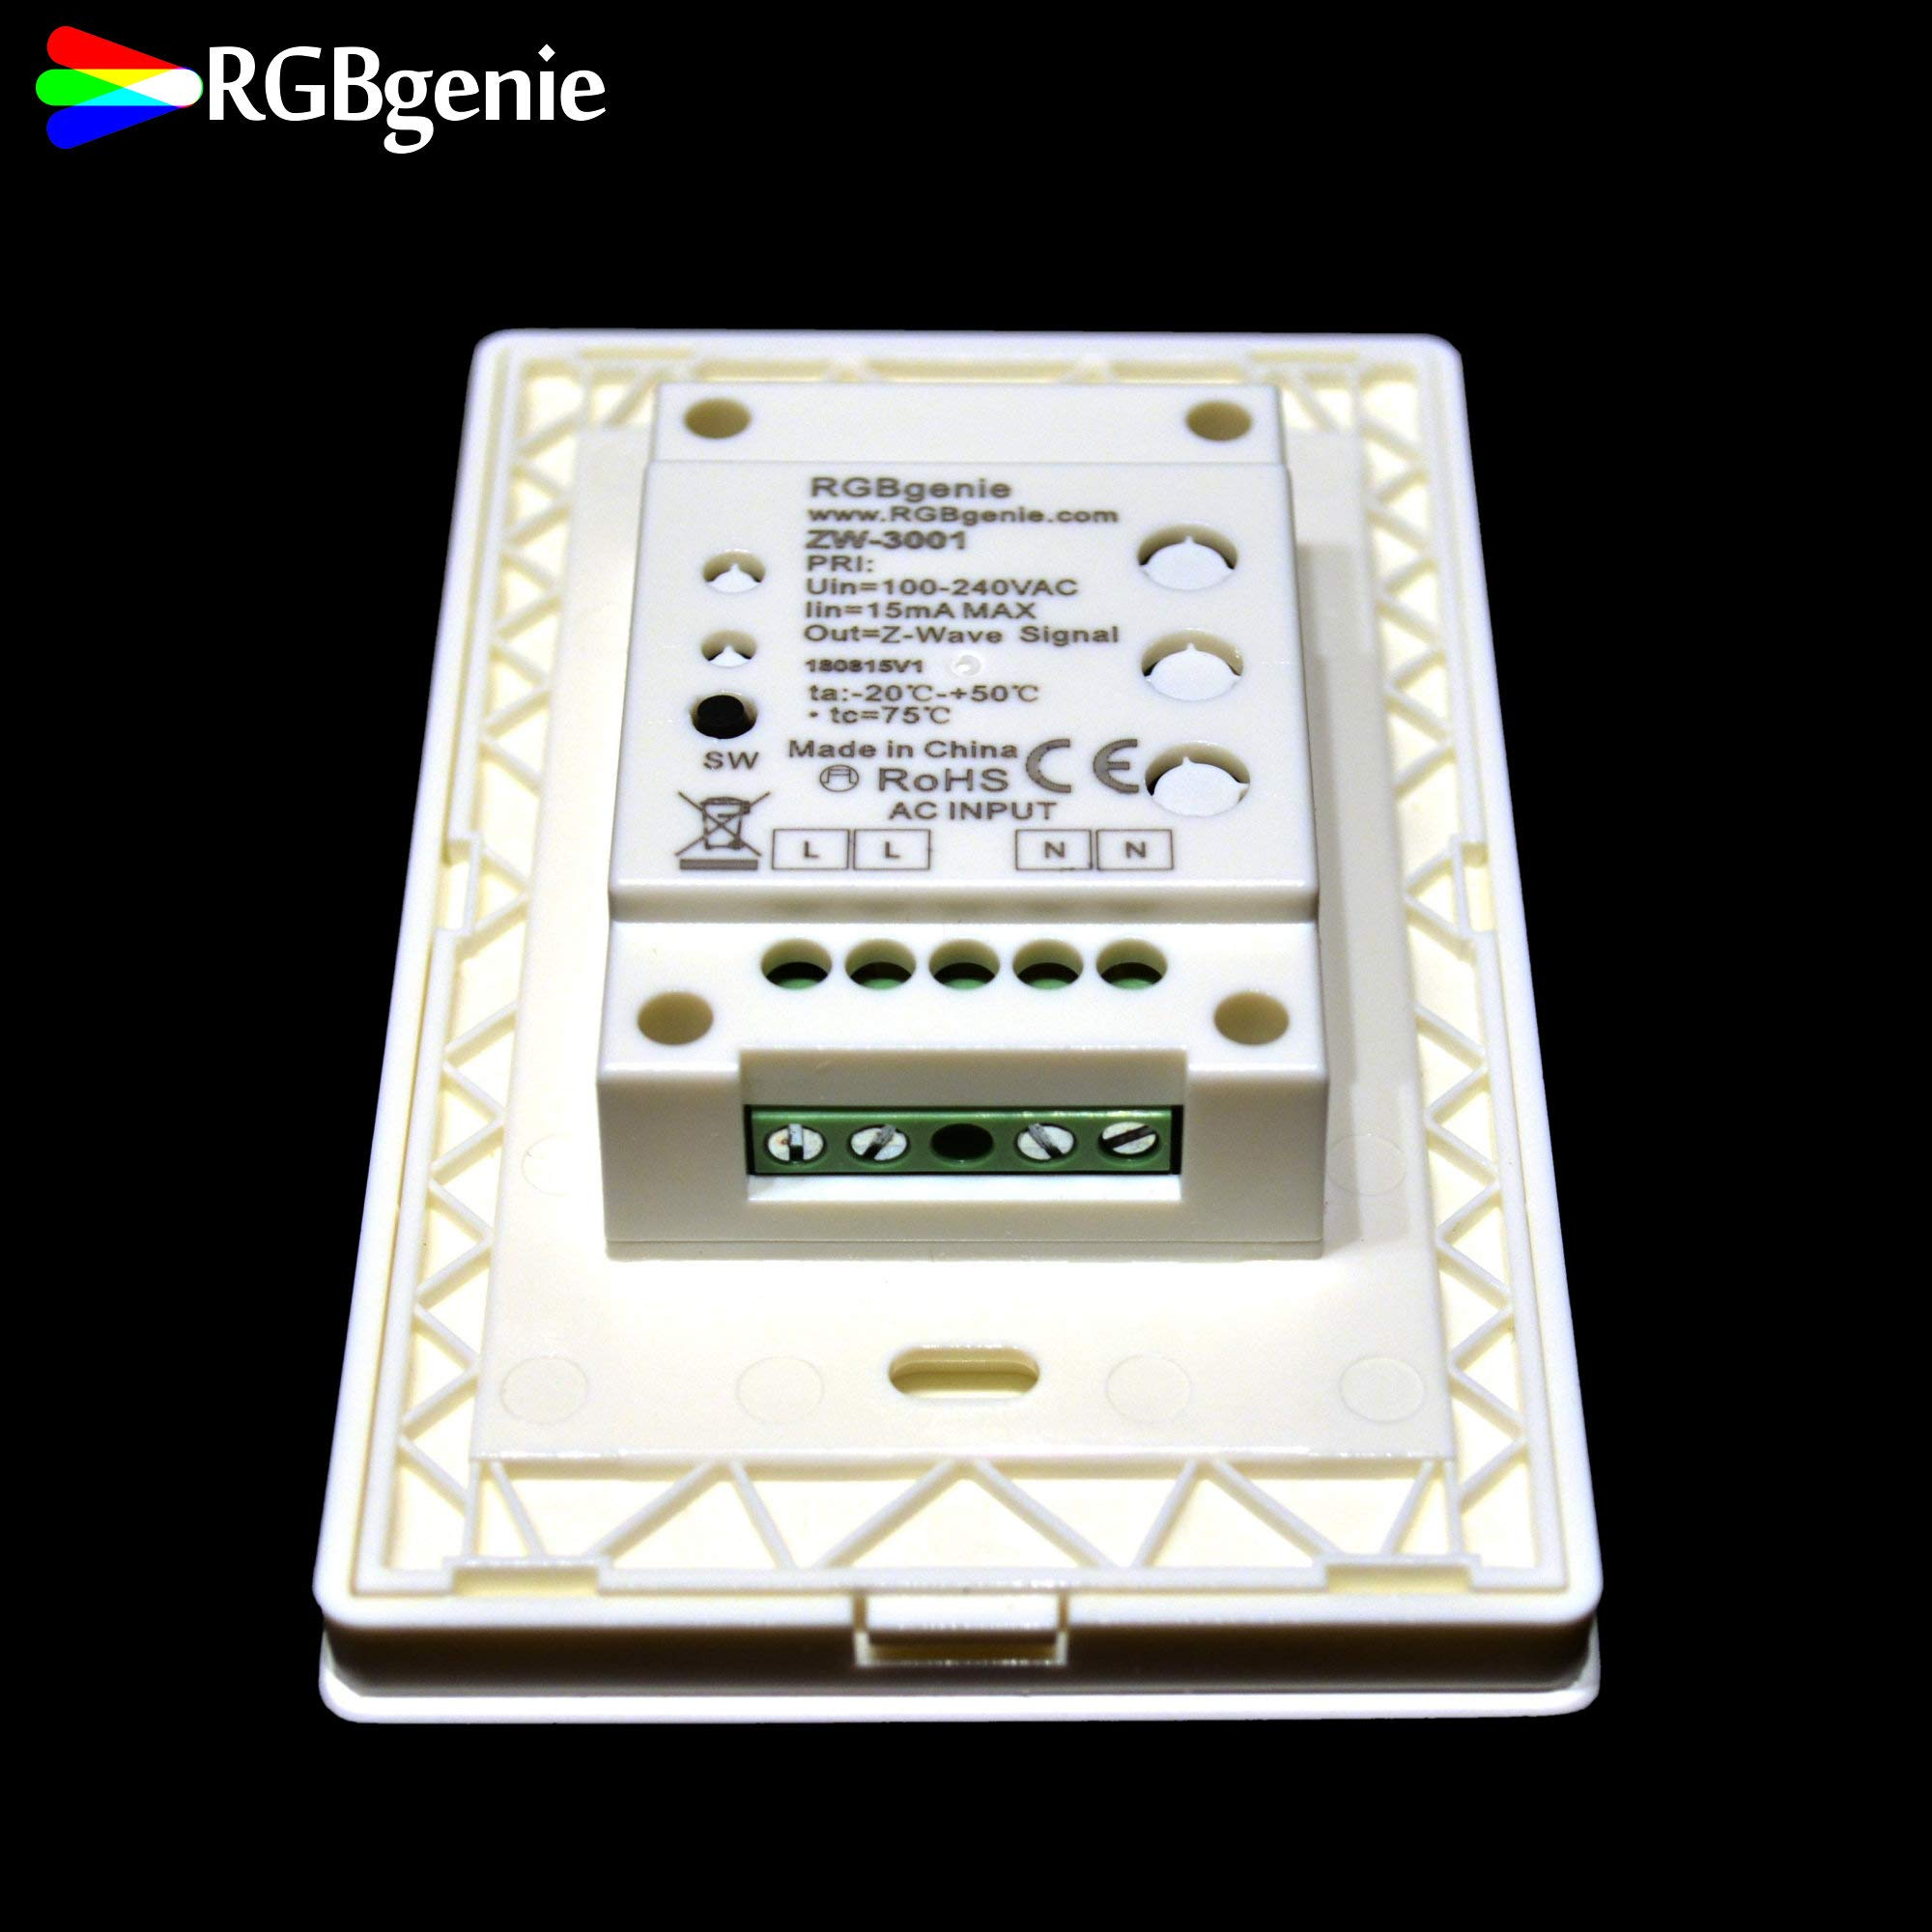 Z-Wave Touch Panel Controller and Dimmer with Built-in Repeater. Can control up to 12 Z-Wave strip lights or bulbs. Single Color, 3 Zone, 3 Scene recall, 110v input. RGBgenie ZW-3001 (white) by RGBgenie (Image #5)